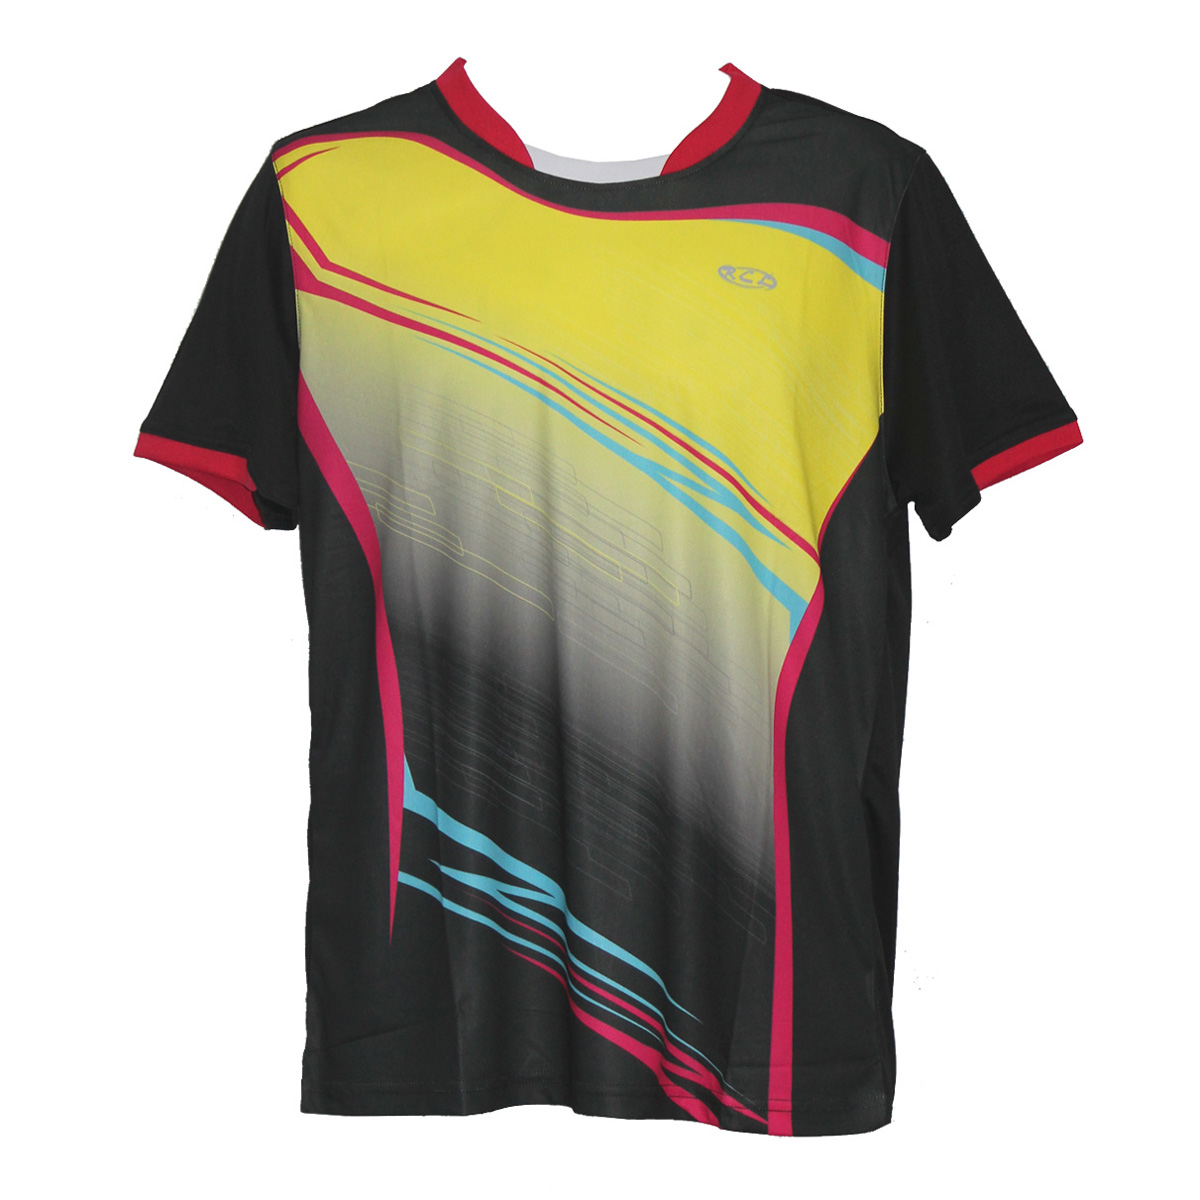 Rcl ts4390 men sports t shirt black blue rcl sport for T shirt supplier wholesale malaysia